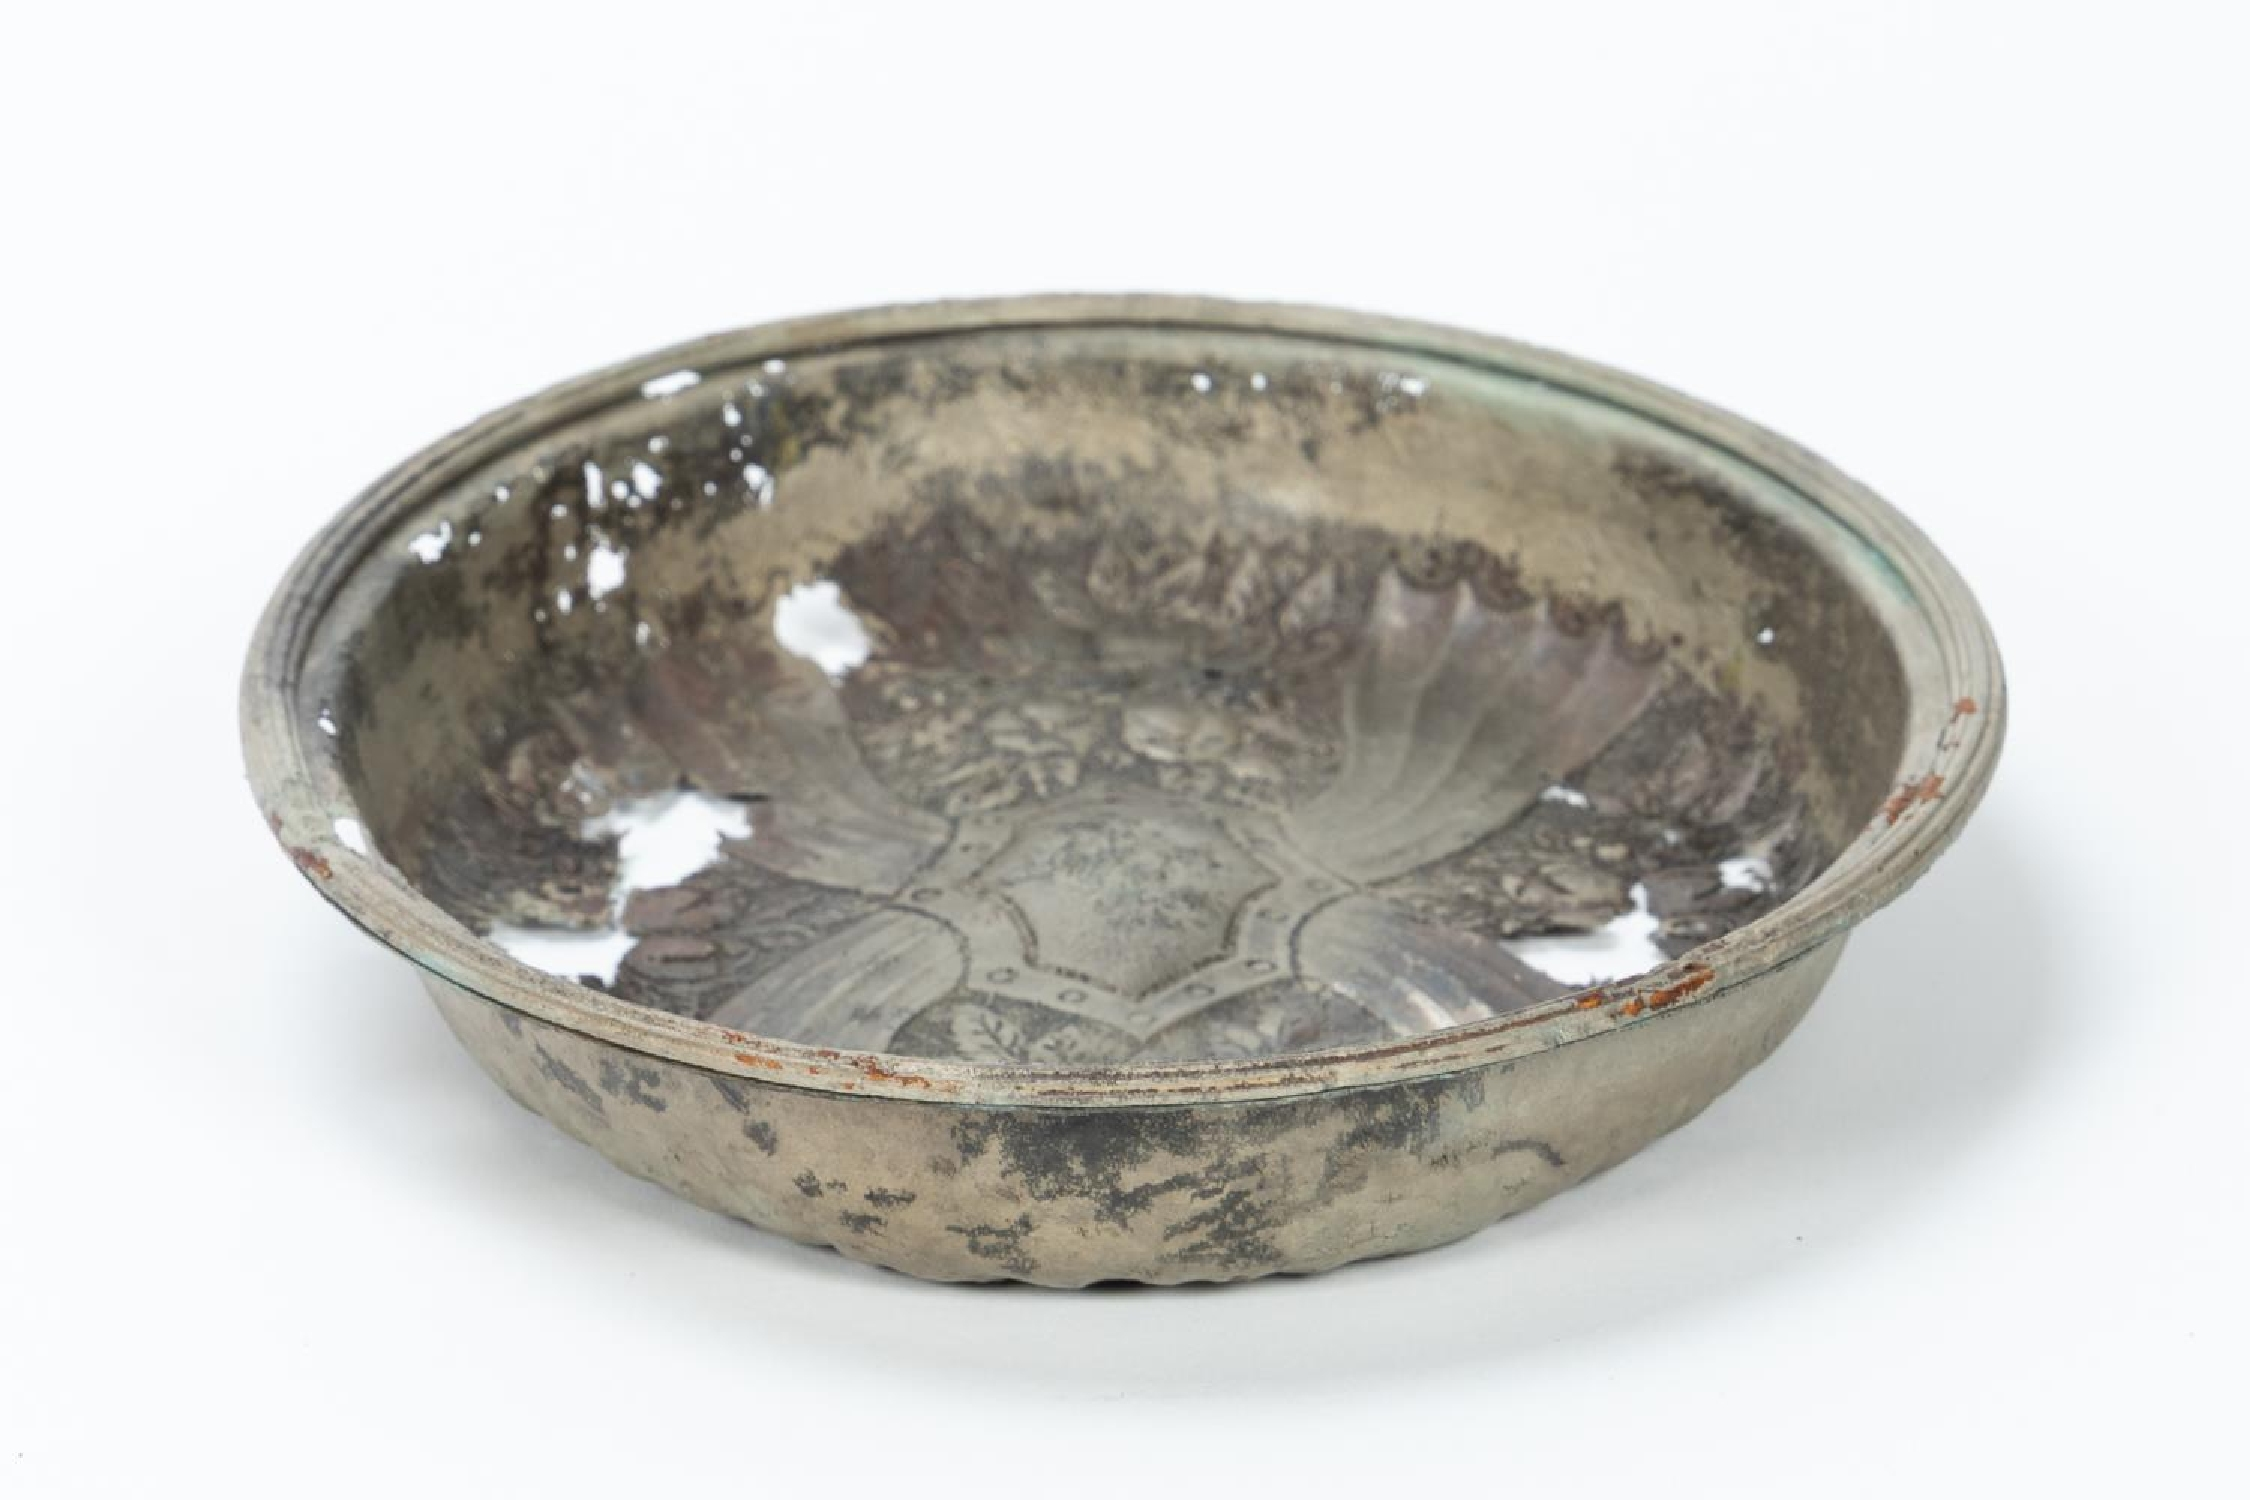 RMS CARPATHIA, SALVAGED SILVERPLATE SERVING DISH - Image 3 of 7